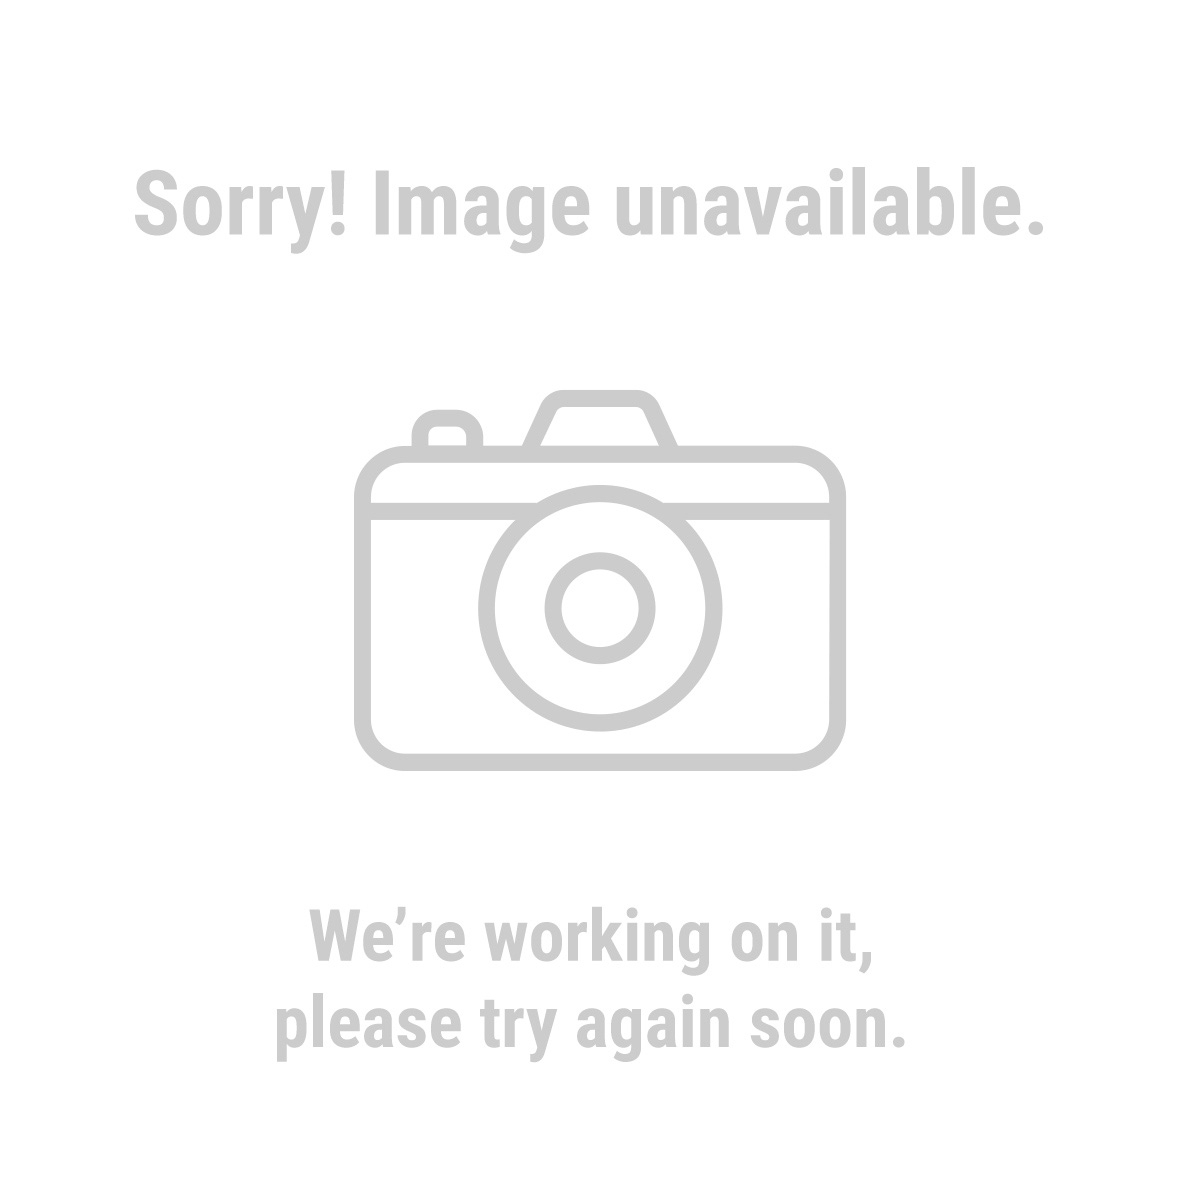 Bunker Hill Security 61229 8 Channel Surveillance DVR with 4 Cameras and Mobile Monitoring Capabilities